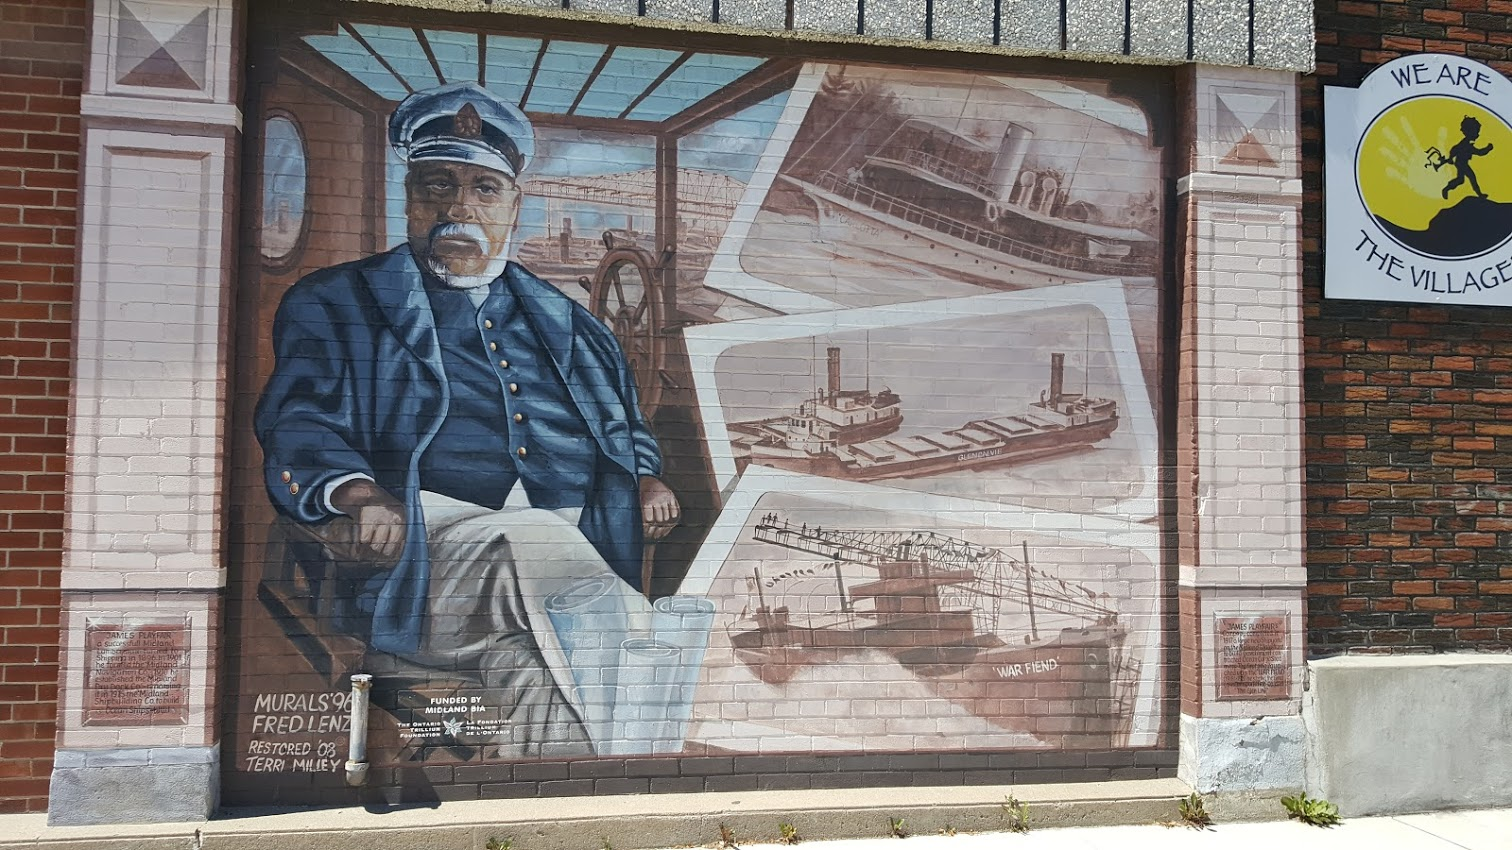 James playfair owned lumberyards great lakes shipping and the general store